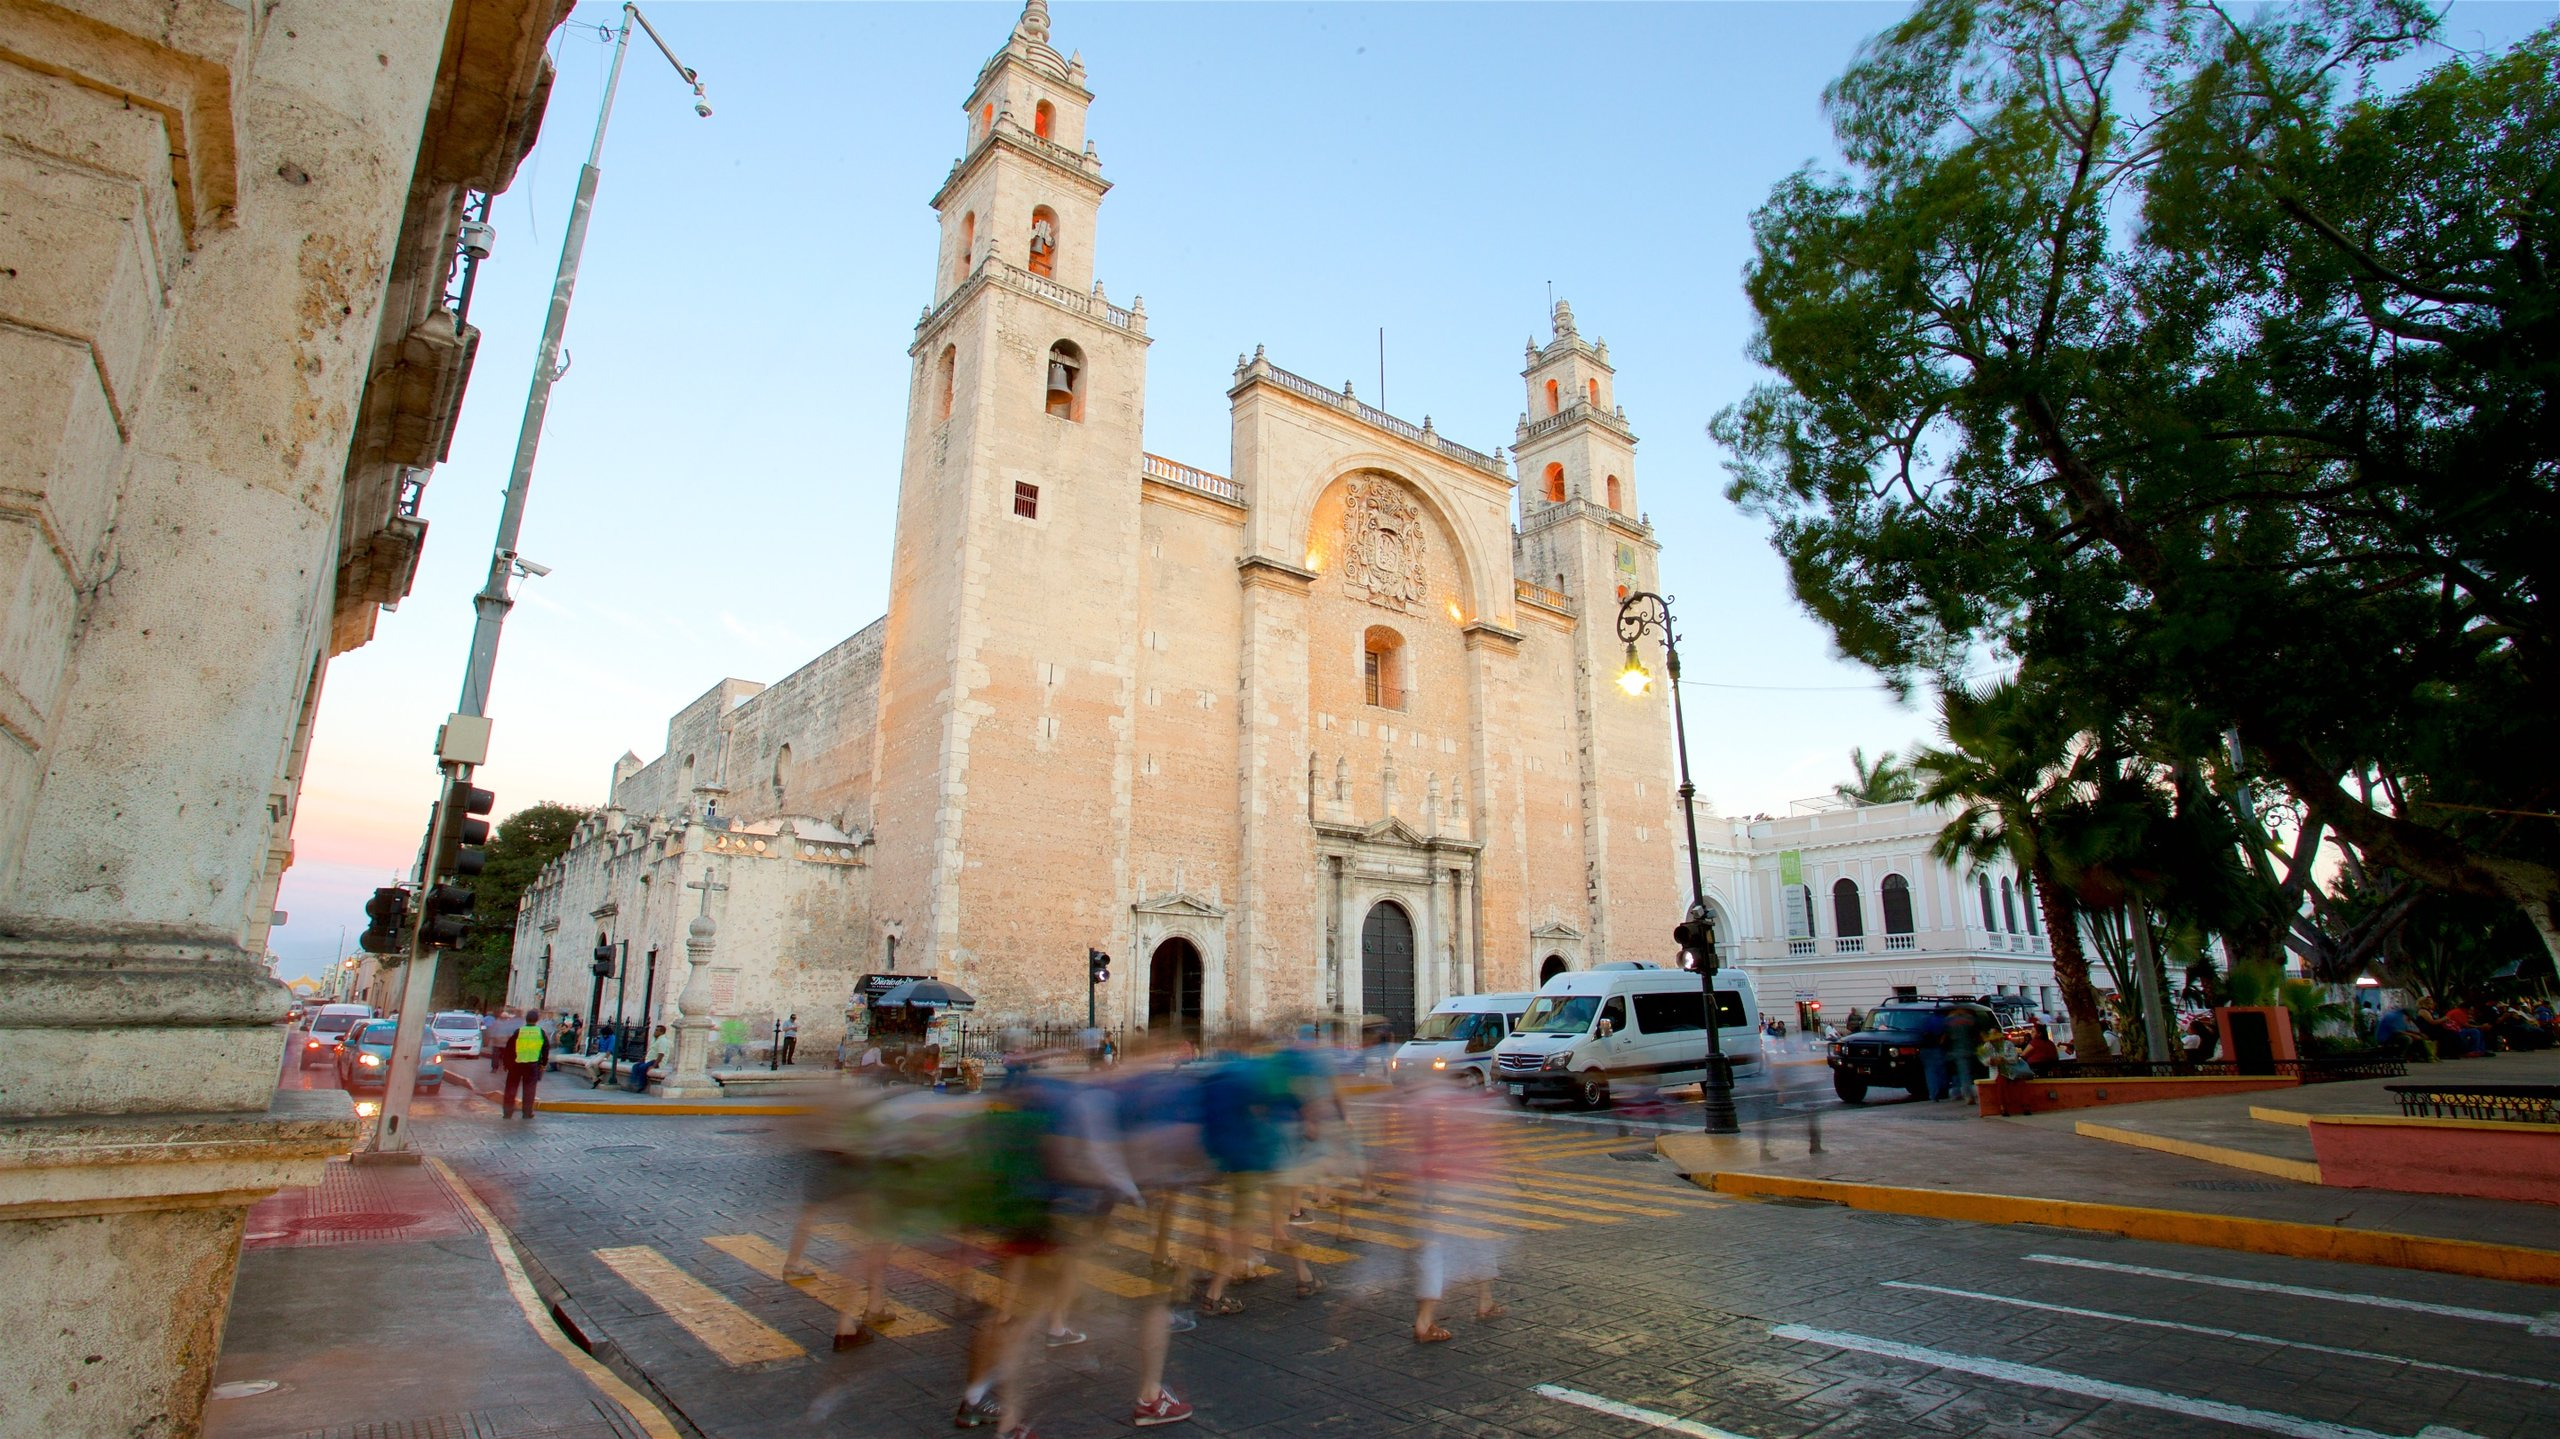 Visit chapels and survey impressive works of religious art inside this ancient church, an imposing building in the historical center of Merida.